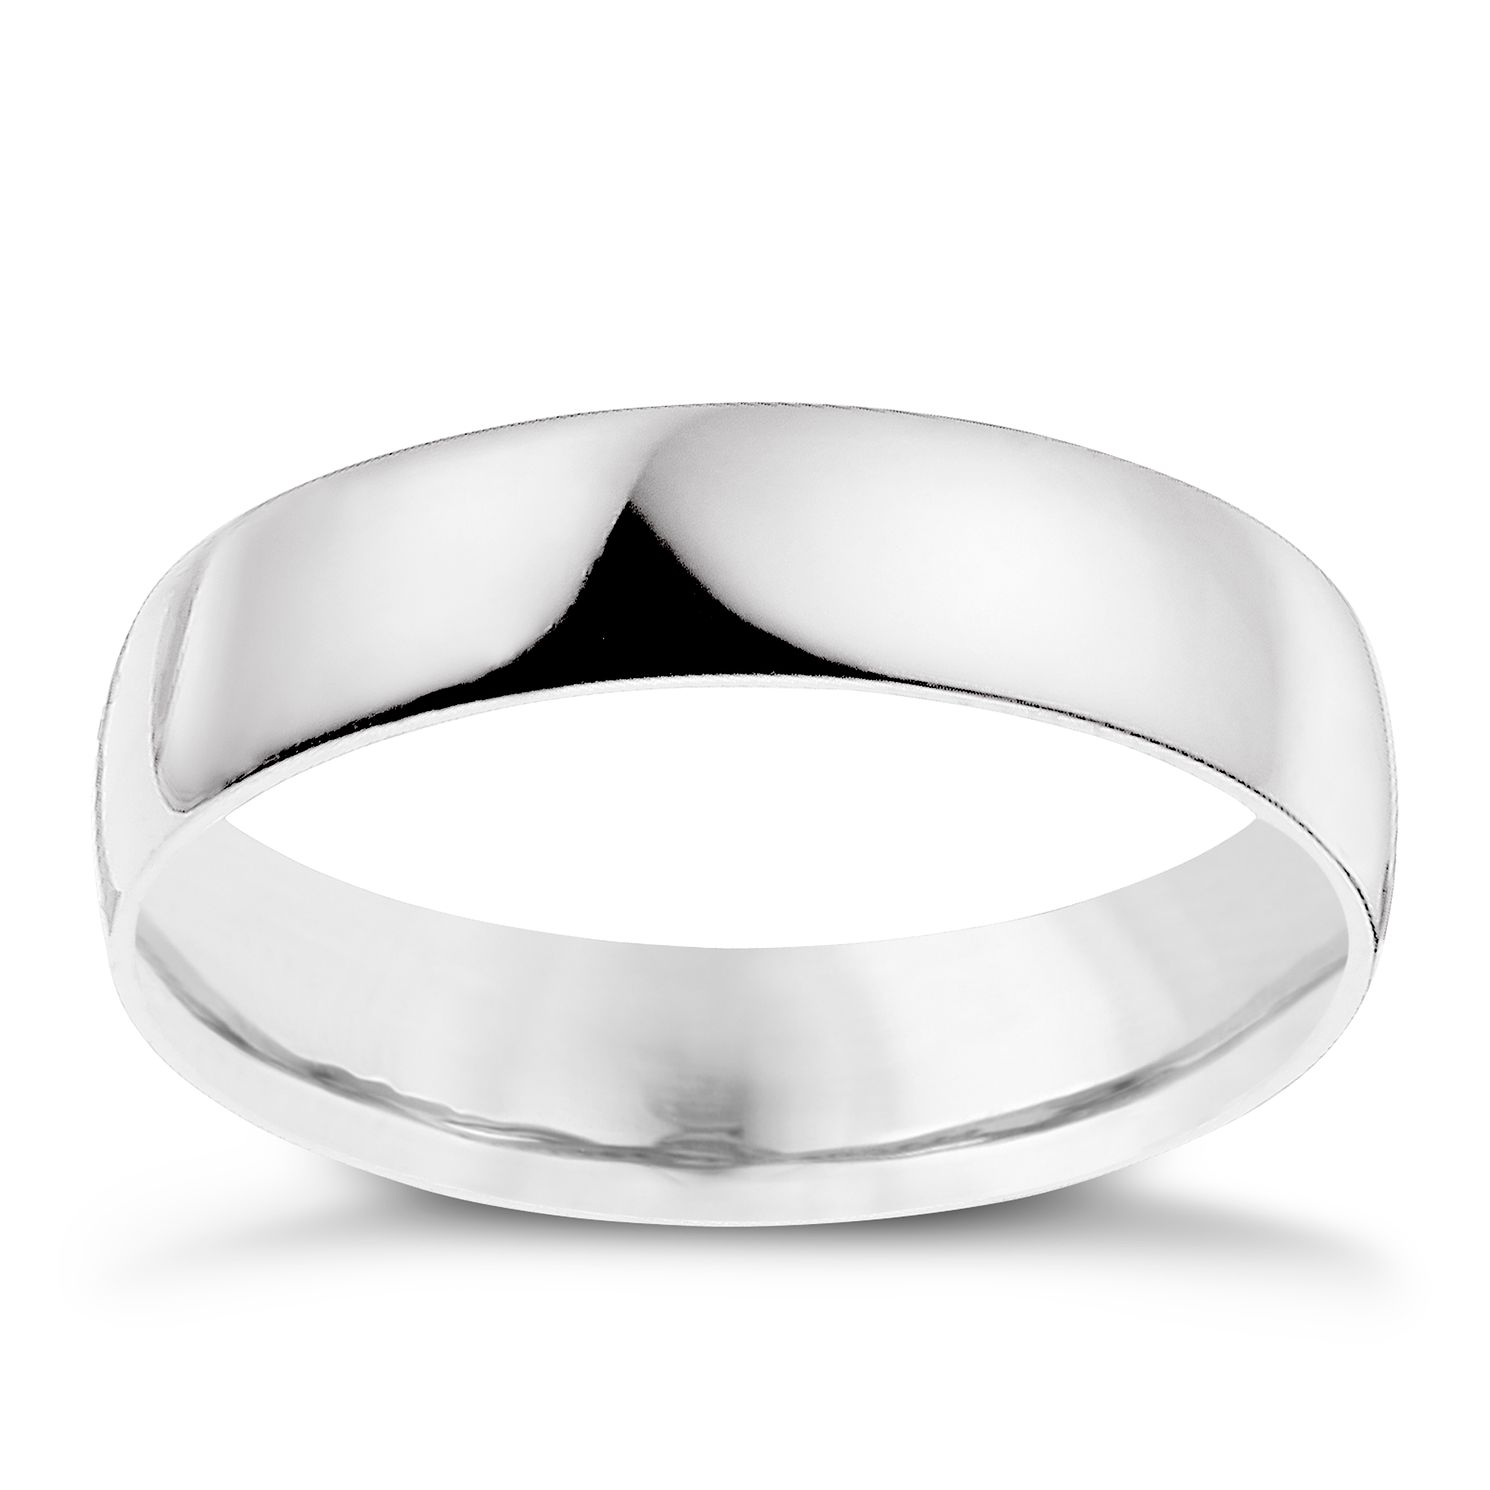 Palladium 950 5mm Extra Heavyweight D Shape Ring - Product number 9315497